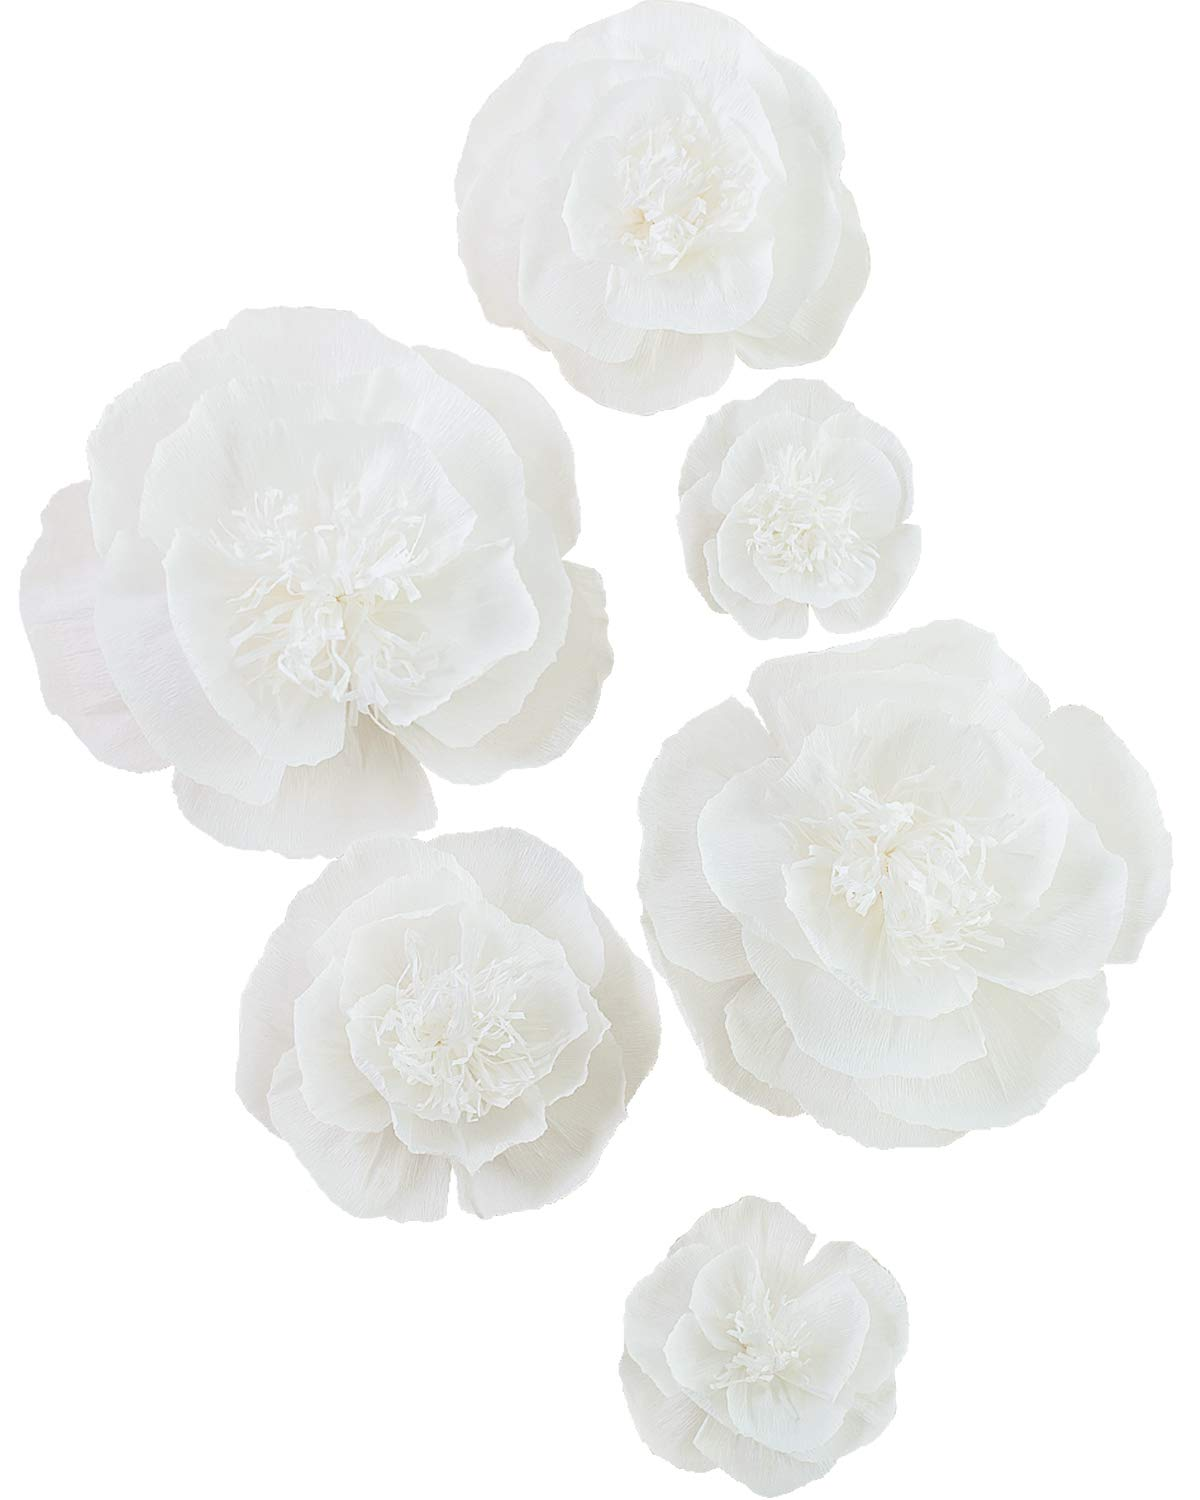 Giant Paper Flower Decorations for Wall White Paper Flower for Wall Ivory Crepe Paper Flower for Wedding Bouquets Centerpieces Arrangements Party Baby Shower Decorations Nursery Wall Decor(Set 6)